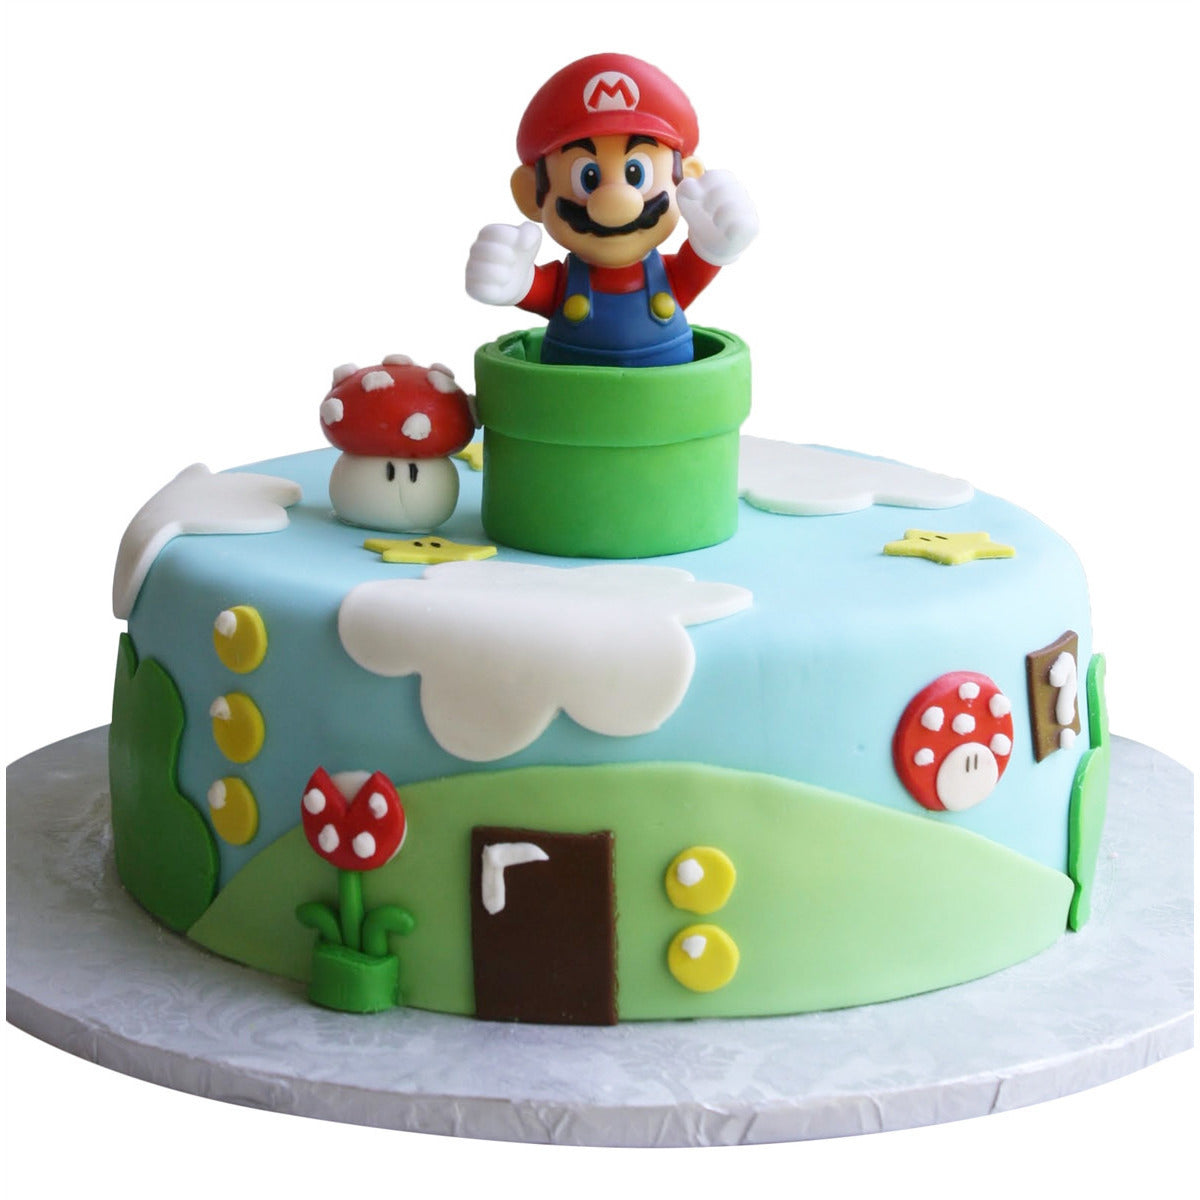 Super Mario Cake 8995 Buy Online Free UK Delivery New Cakes